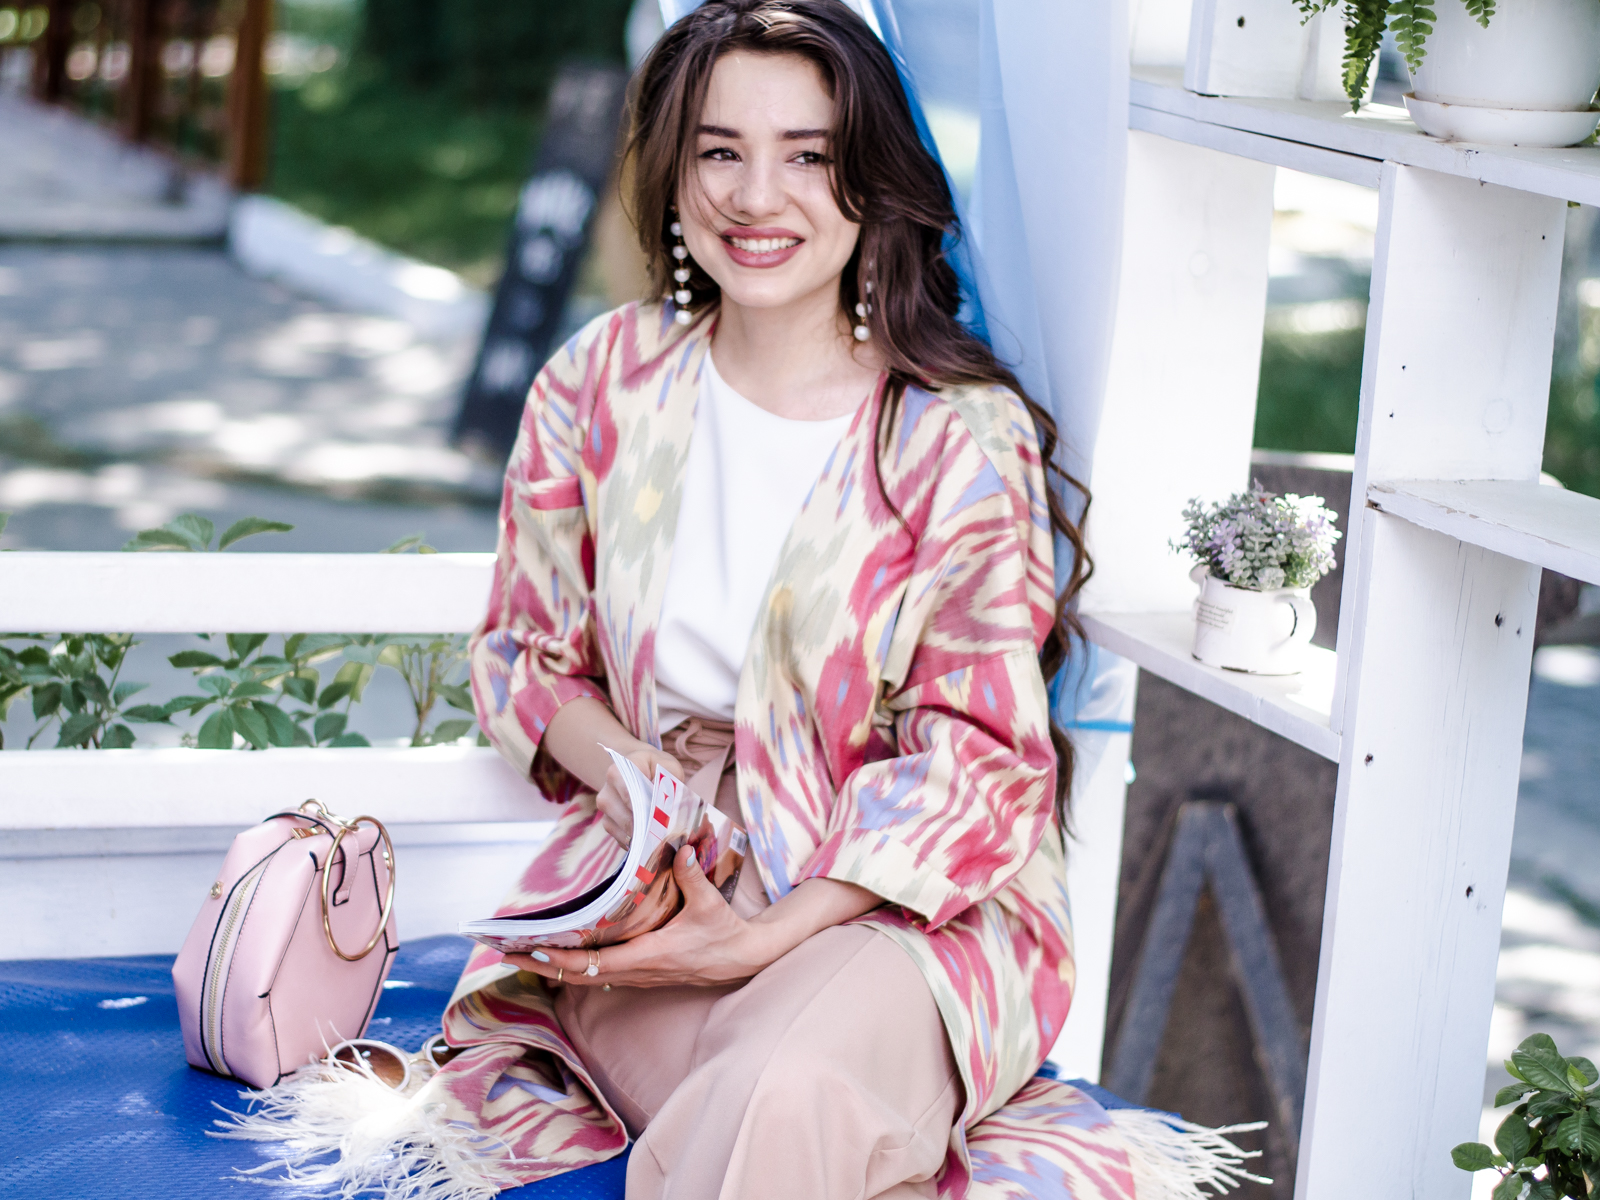 fashion blogger diyorasnotes diyora beta uzbek print national print chapan pink pants casual chic